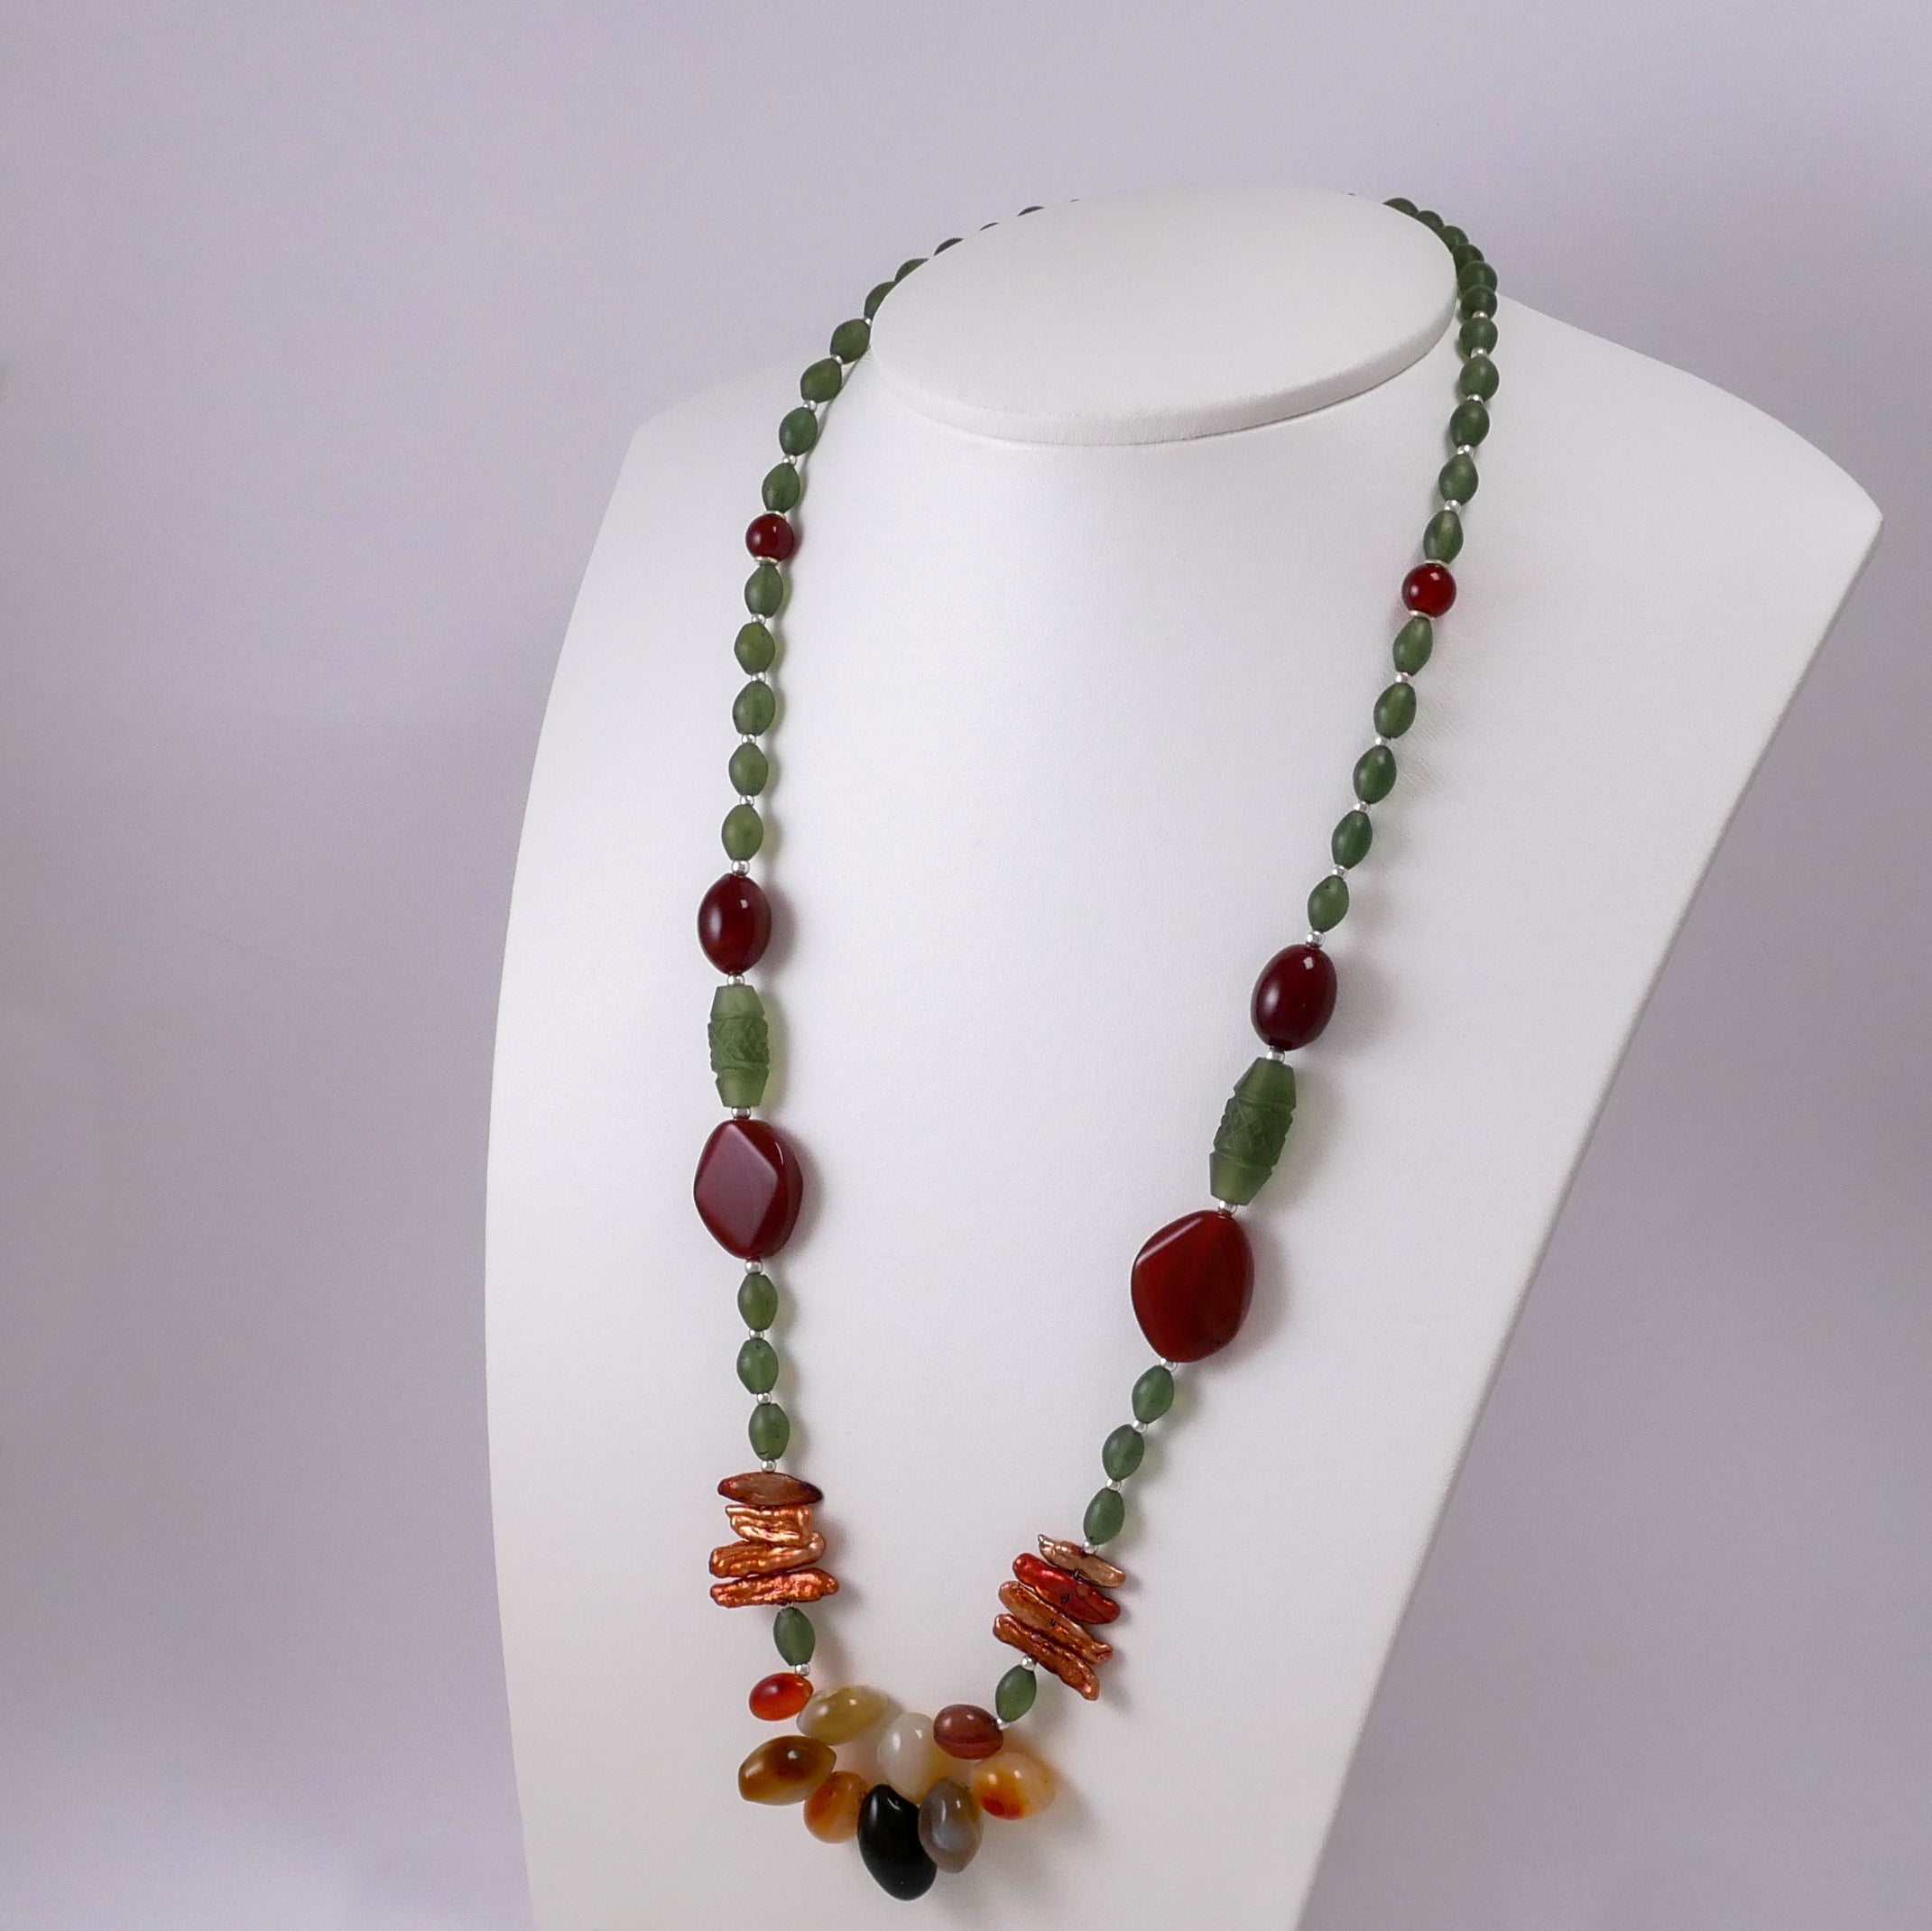 Jade, Pearls, Agates, Carnelians, and Sterling Silver Necklace - Katerina Roukouna